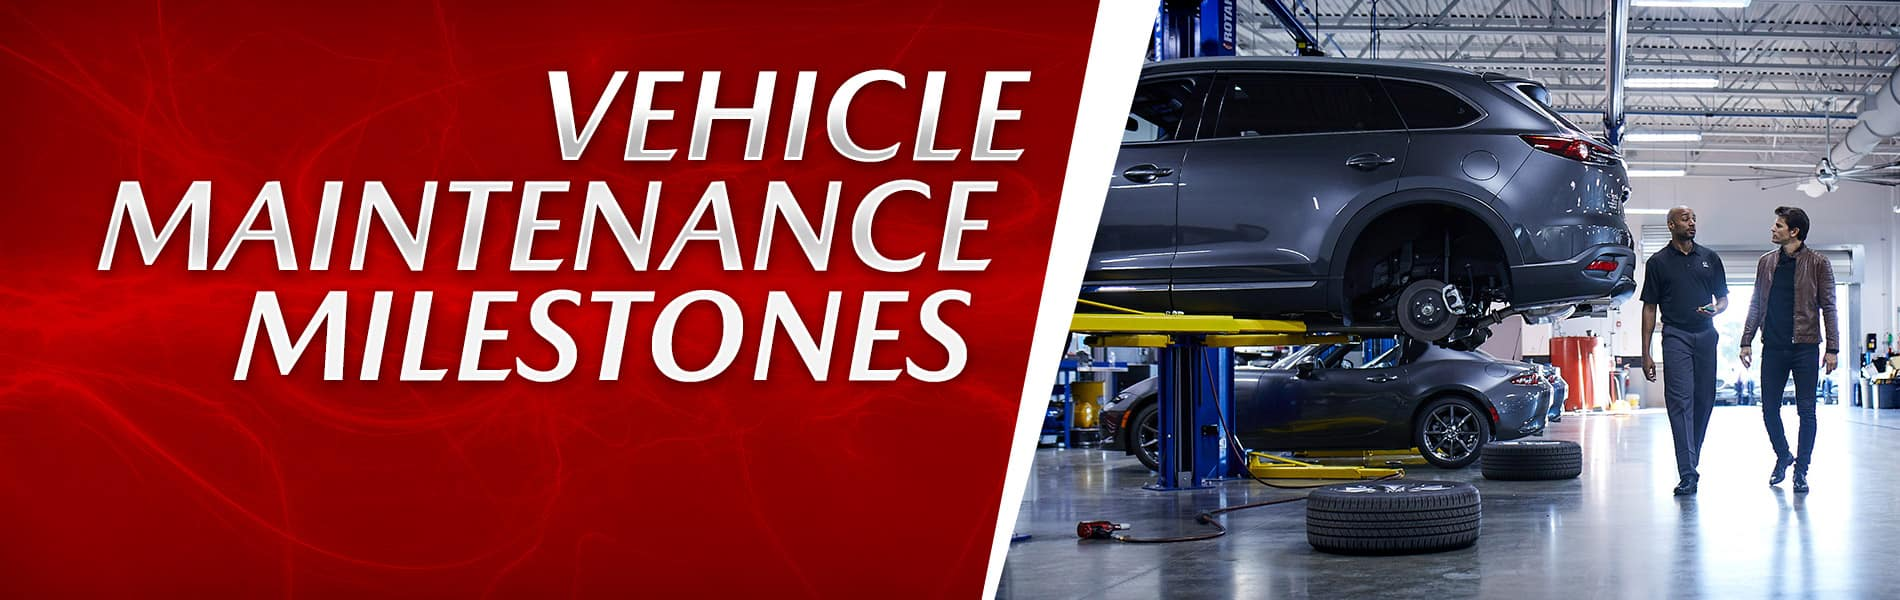 Watch for these vehicle maintenance milestones to ensure your Mazda gets the service it needs